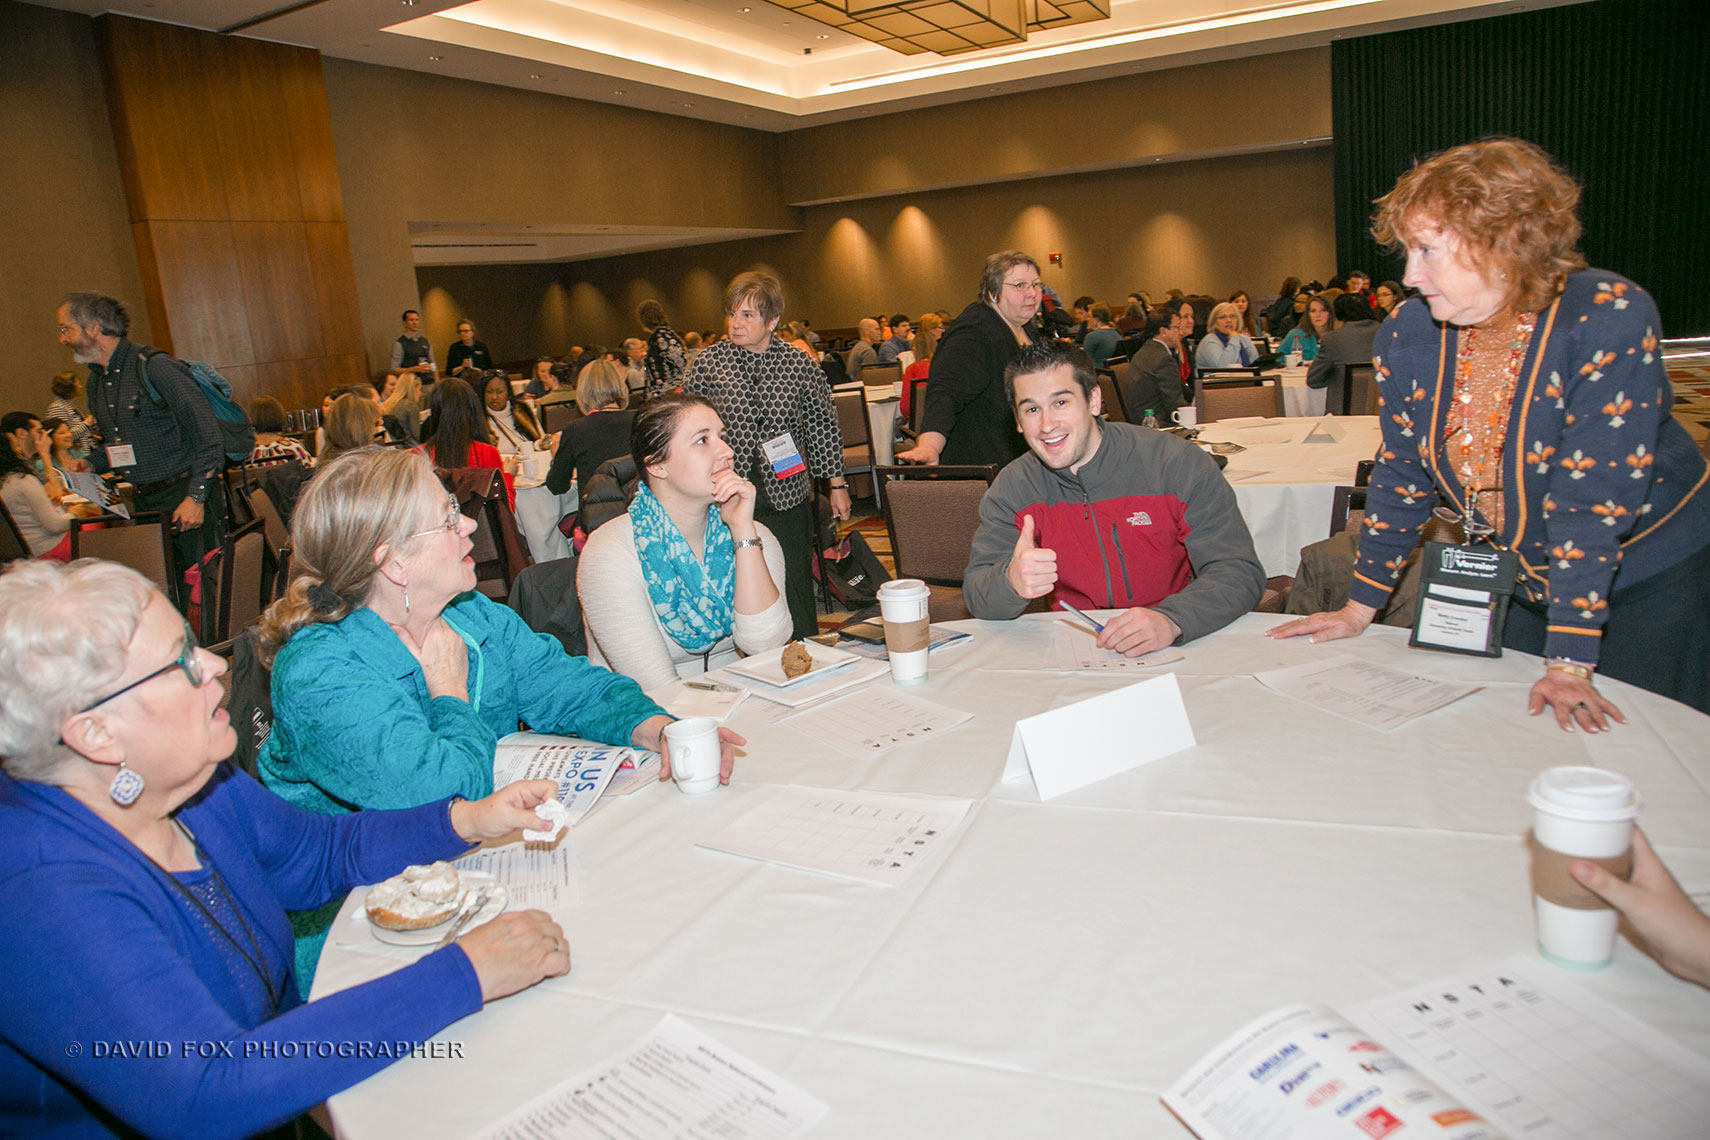 Attendees at Breakfast Table Seminar at the NSTA Conference